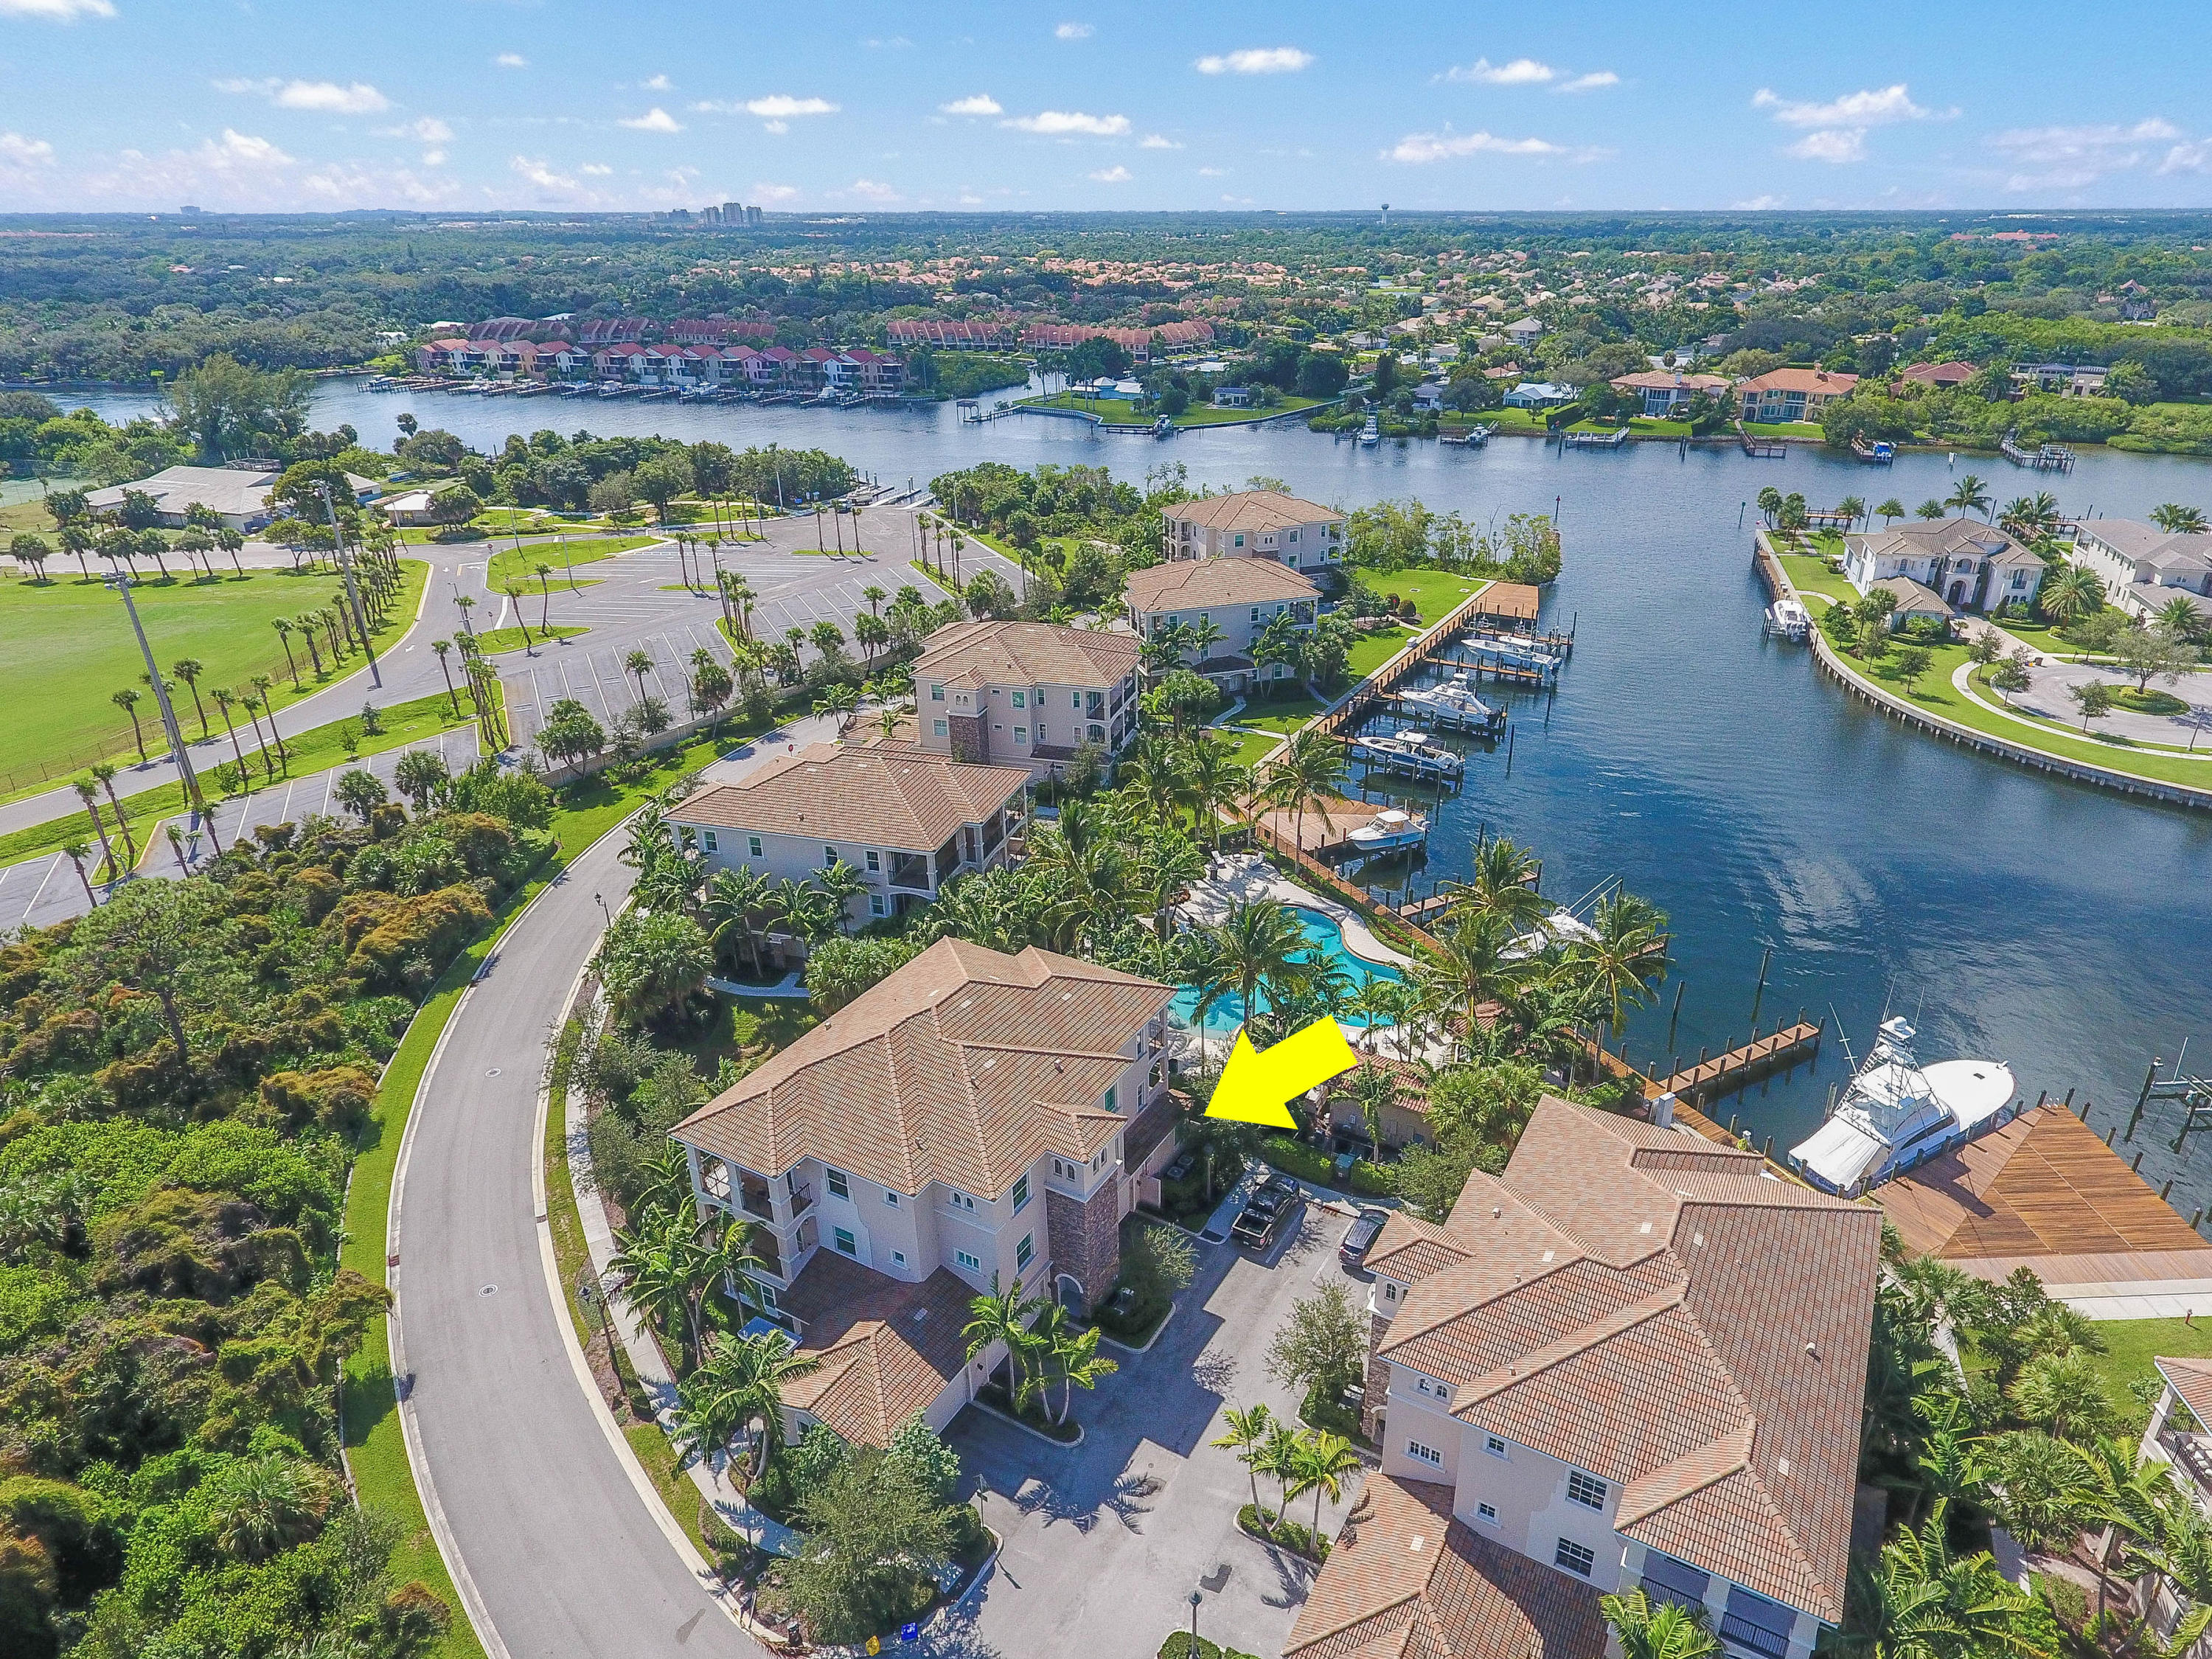 13519 Treasure Cove Circle North Palm Beach, Florida 33408, 3 Bedrooms Bedrooms, ,2 BathroomsBathrooms,A,Condominium,Treasure Cove,RX-10472302